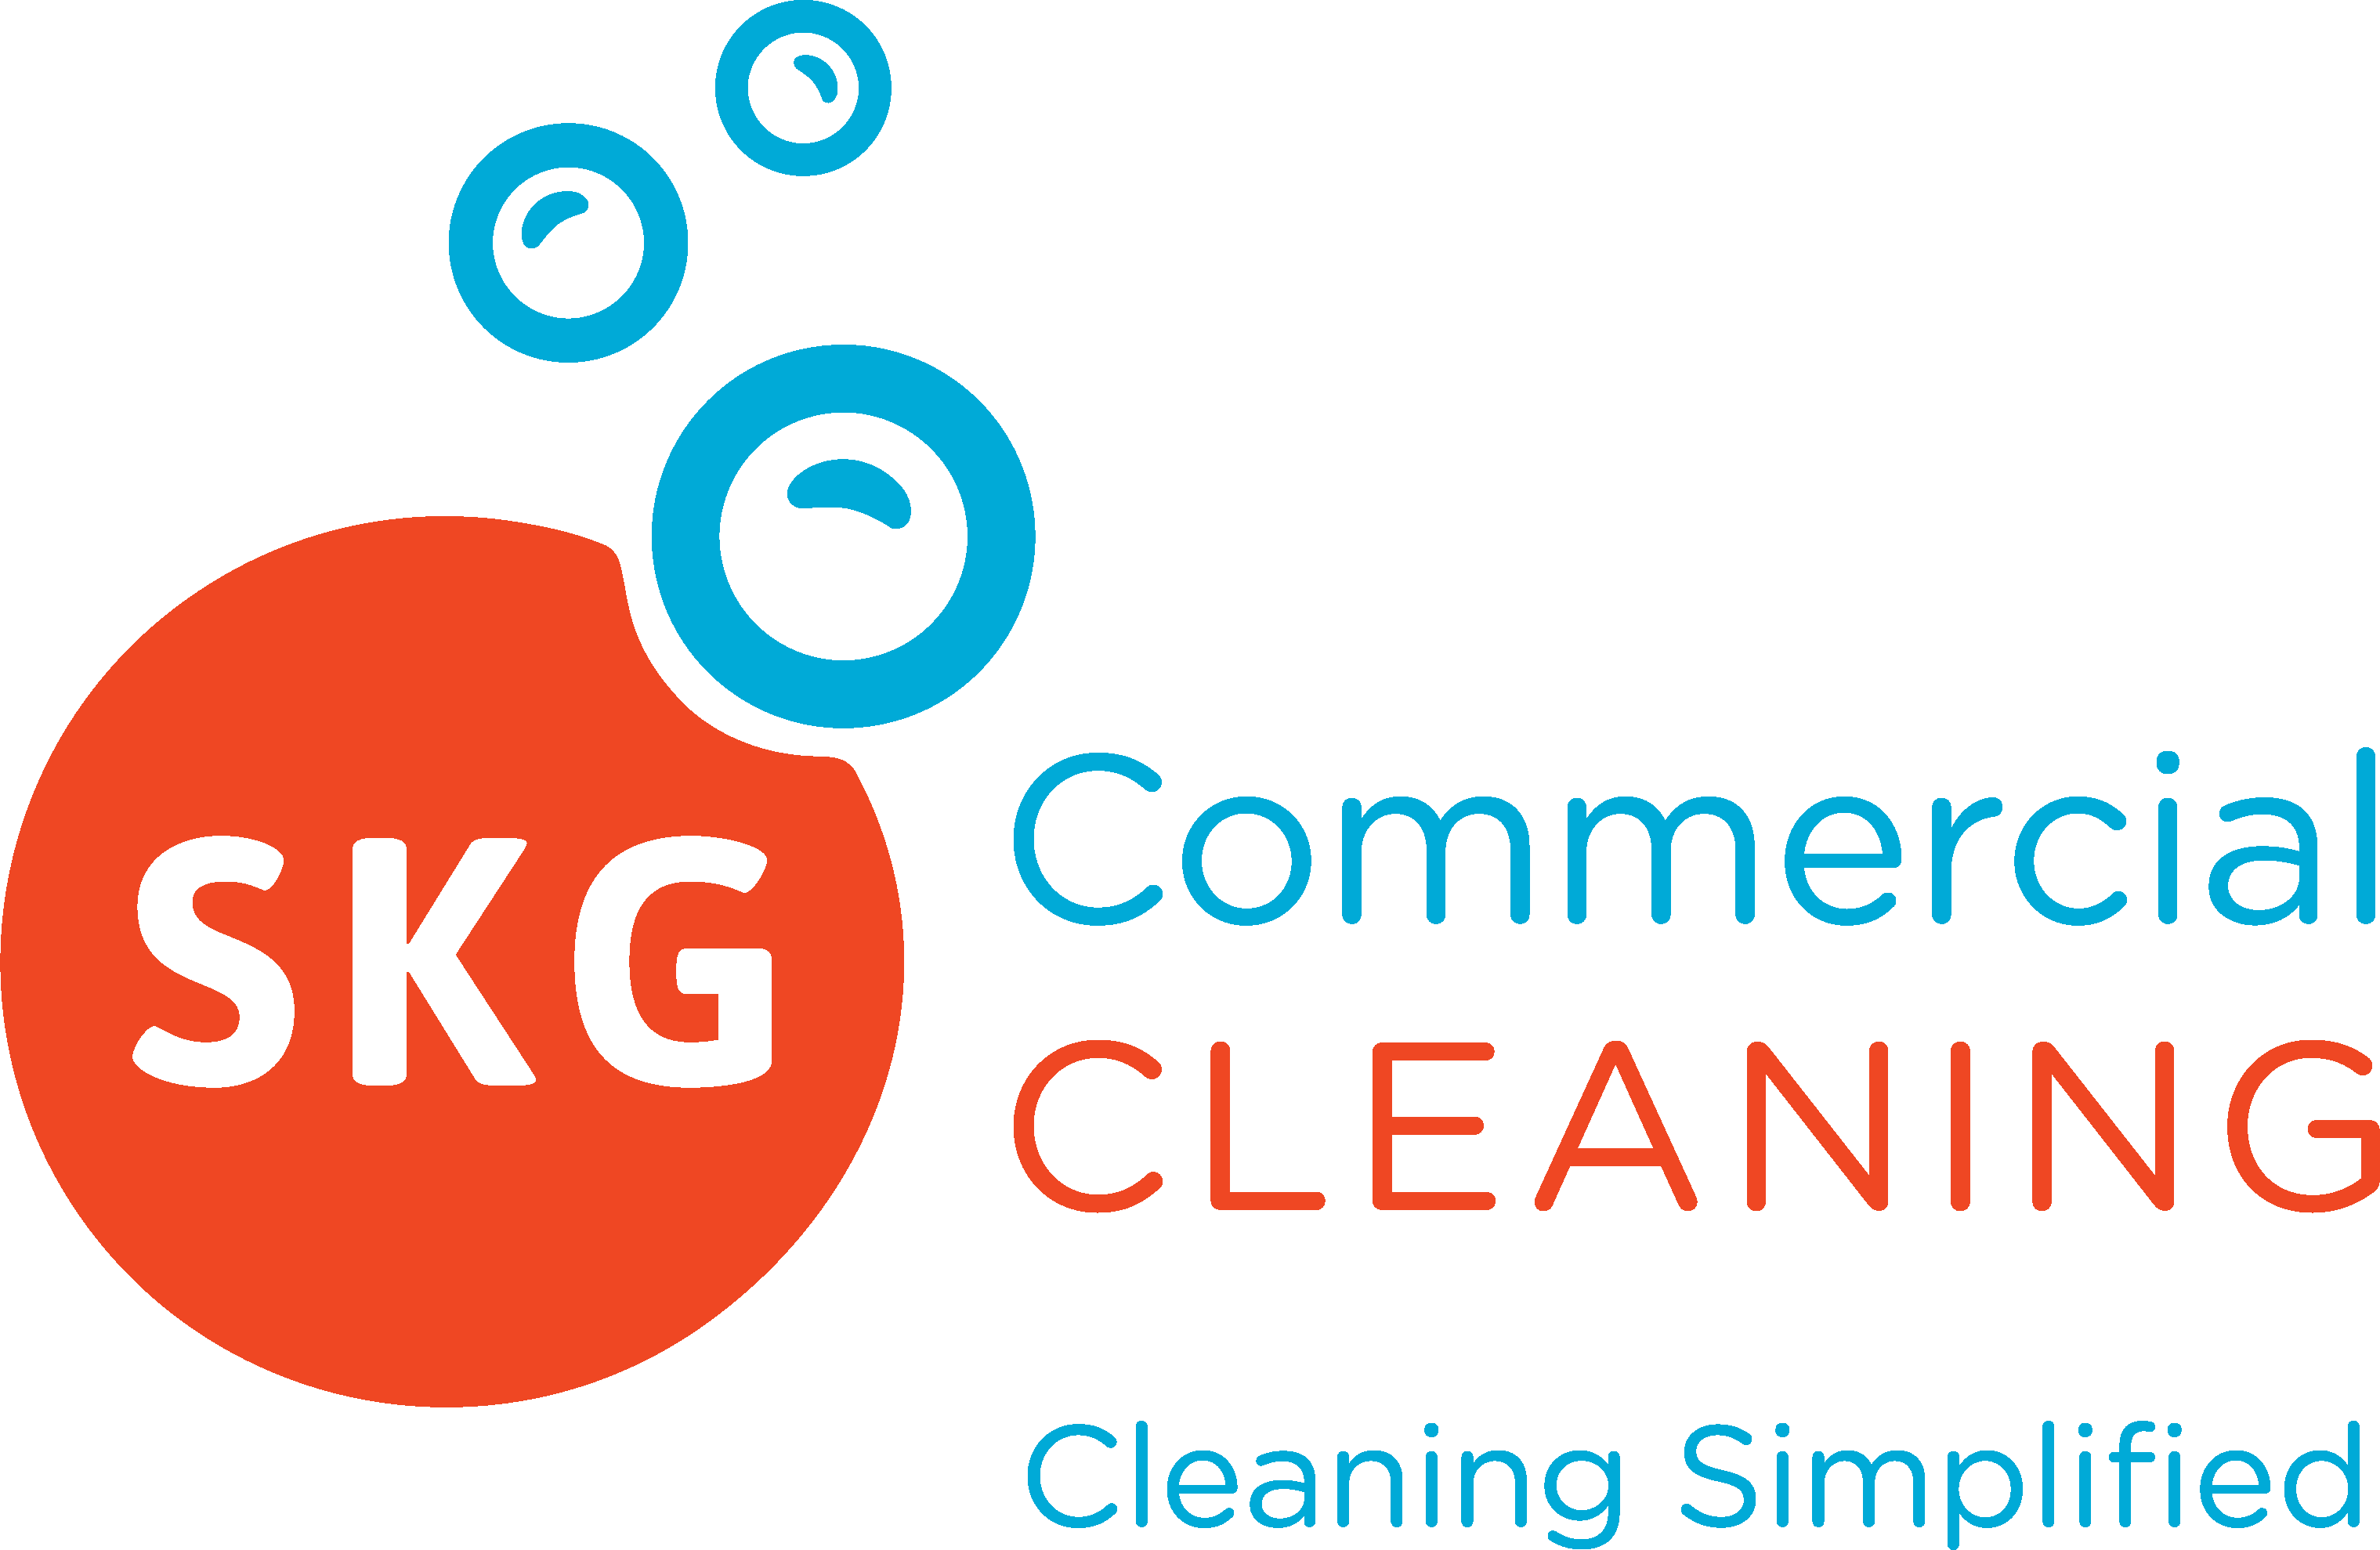 SKG Commercial Cleaning